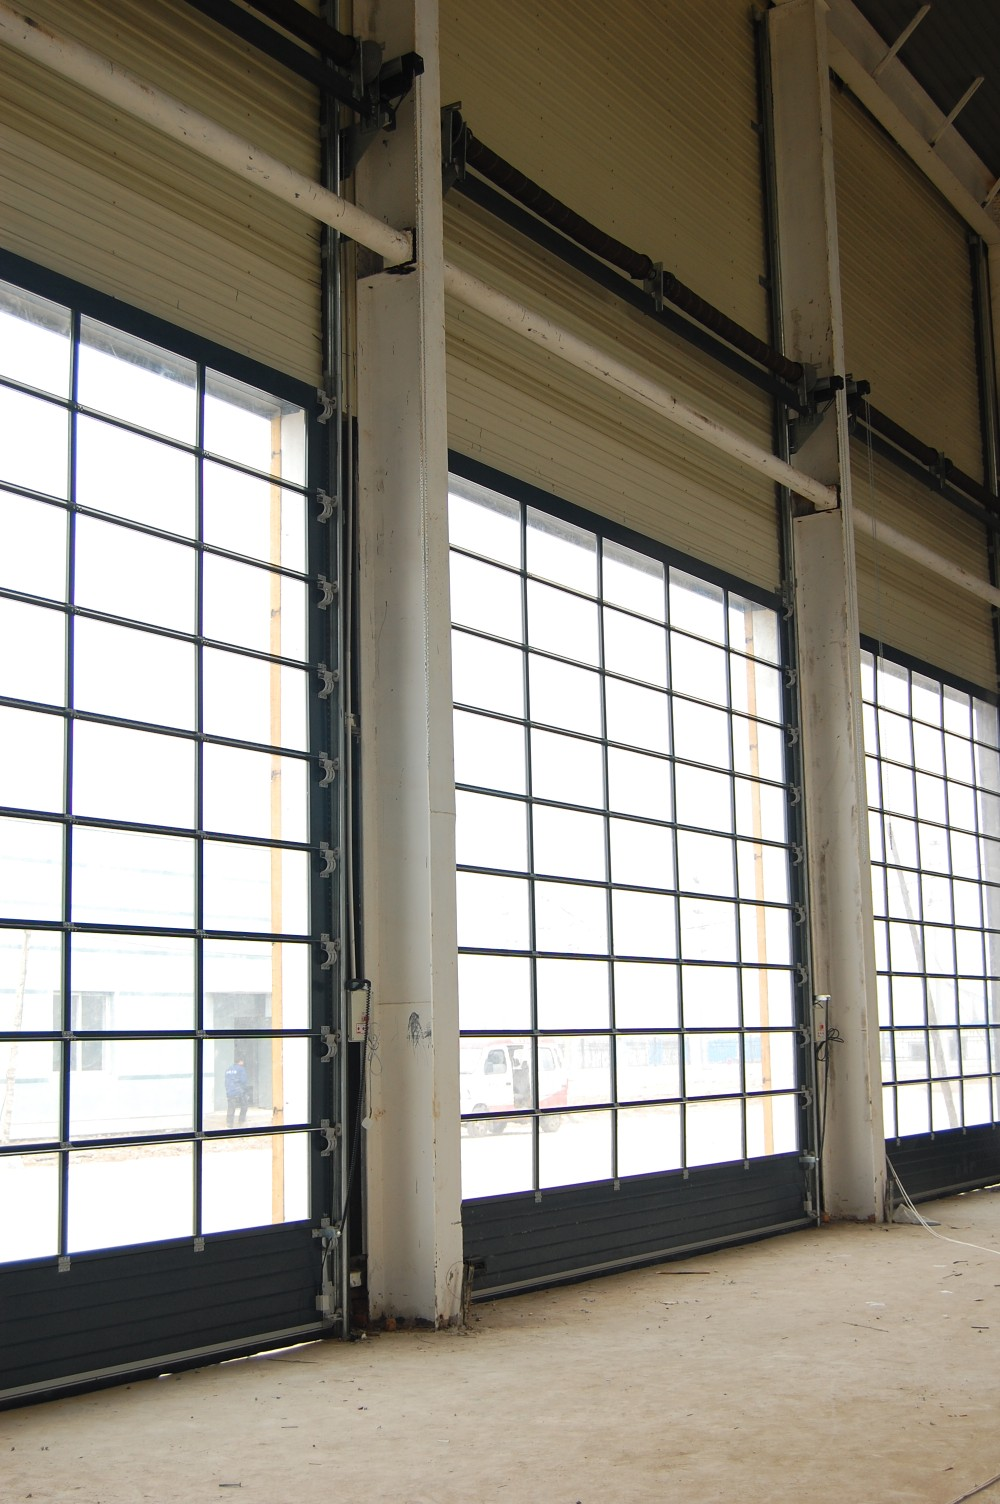 Plexi Glass Doors : Transparent plexiglass garage doors buy